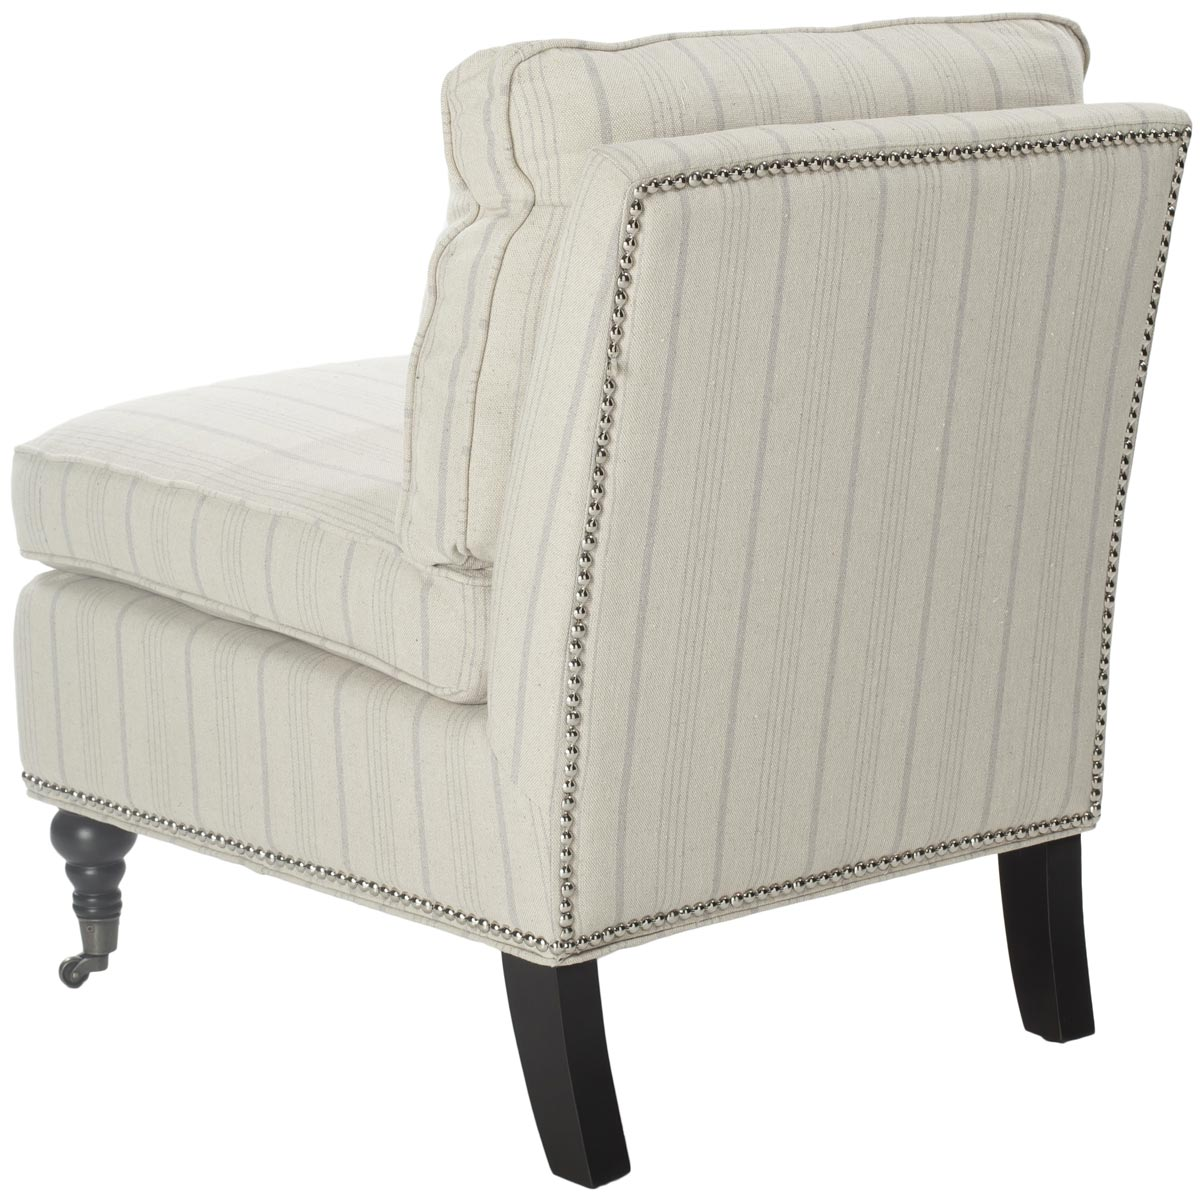 Safavieh - MCR4584F RANDY SLIPPER CHAIR